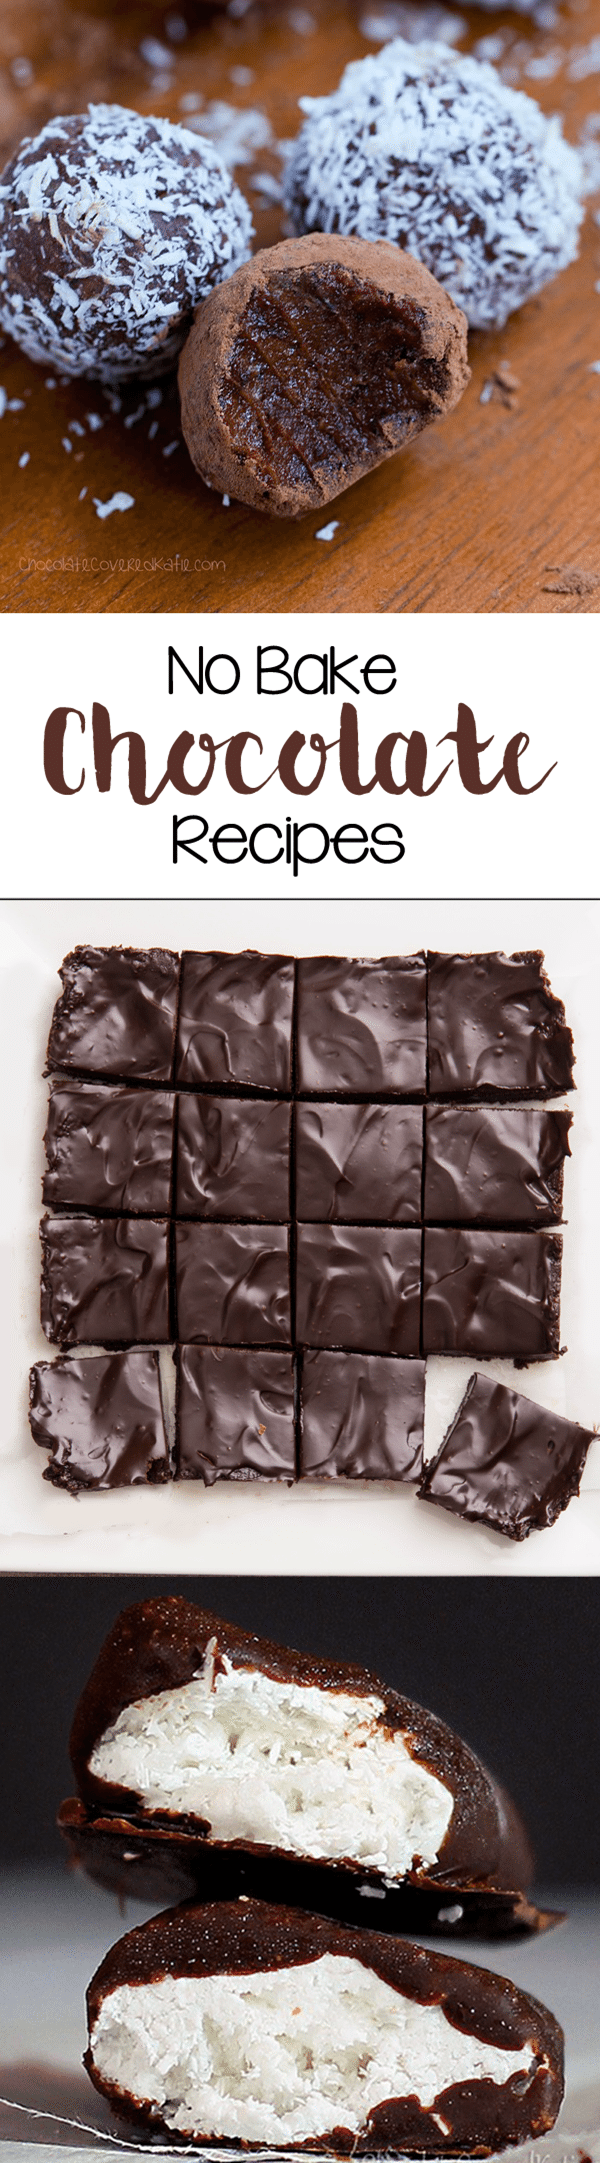 "NO BAKE RECIPES - 50 easy chocolate ""no bake"" treats, including no bake cookies ▪ no bake bars ▪ no bake desserts...from @choccoveredkt - http://chocolatecoveredkatie.com/2016/02/11/no-bake-chocolate-recipes-healthy-easy/"